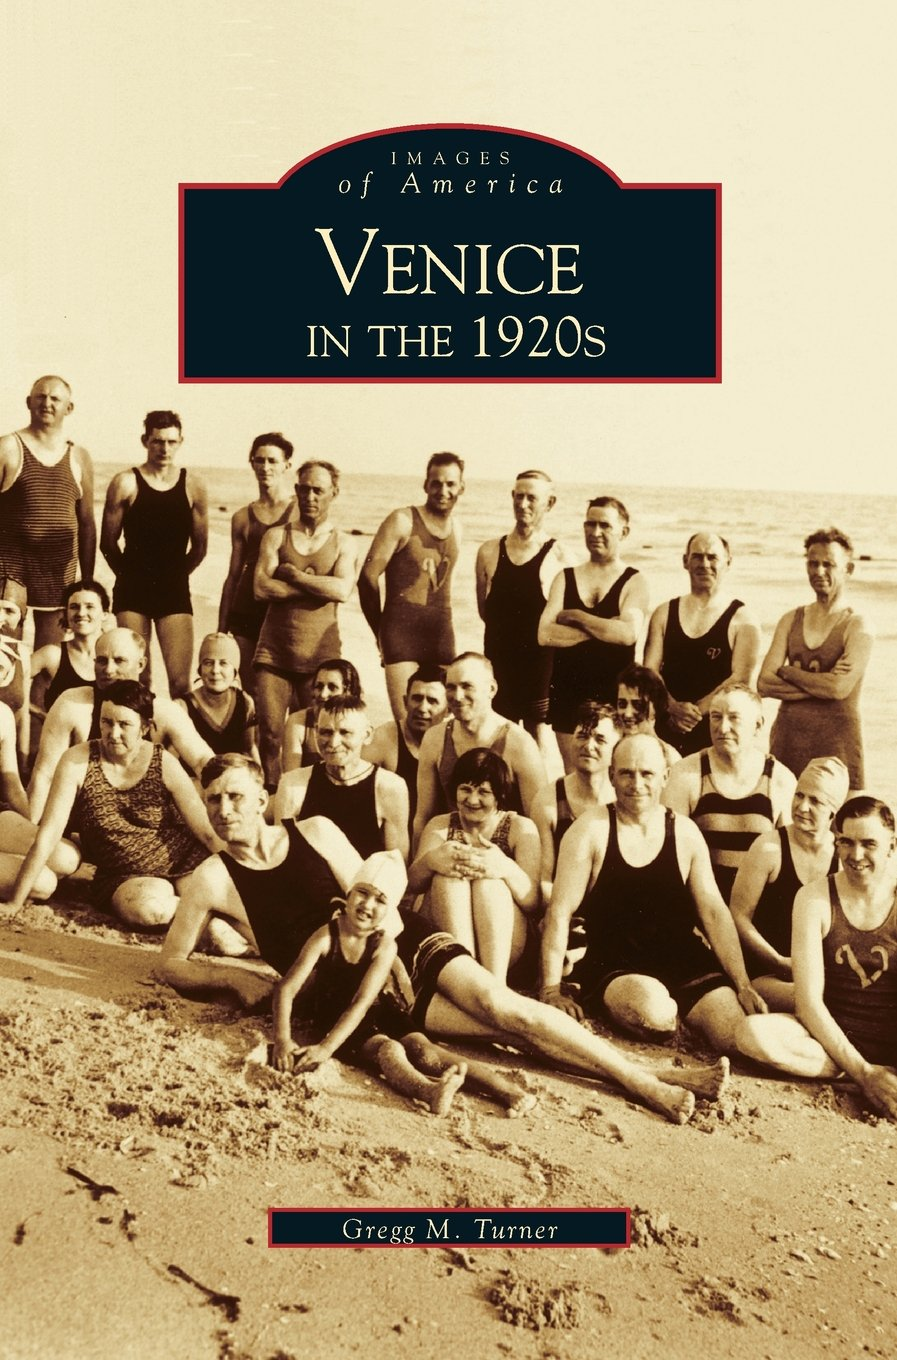 Venice 1920s FL Images America product image